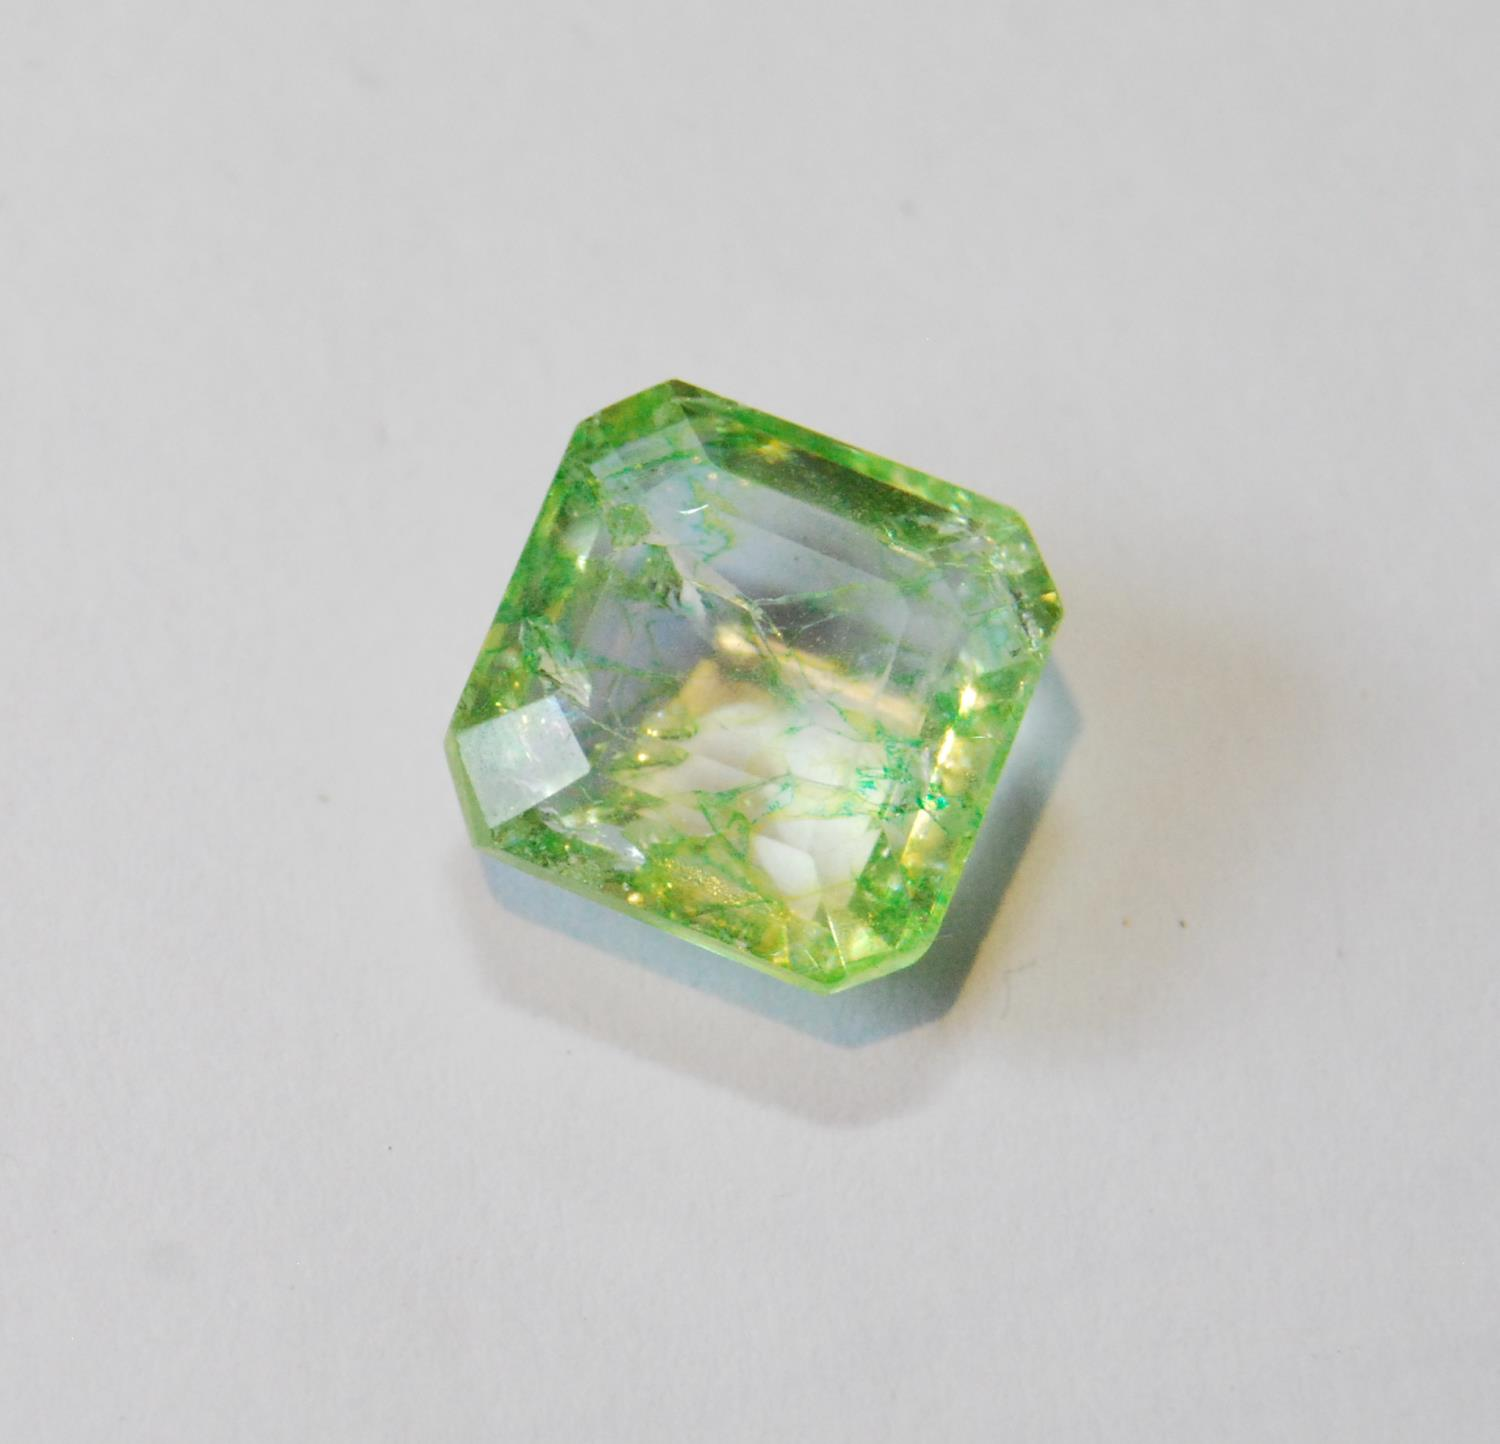 Unmounted square emerald with NGL report, given as 8.65ct, 12.24mm x 7.26mm, treated, of almost lime - Image 2 of 5